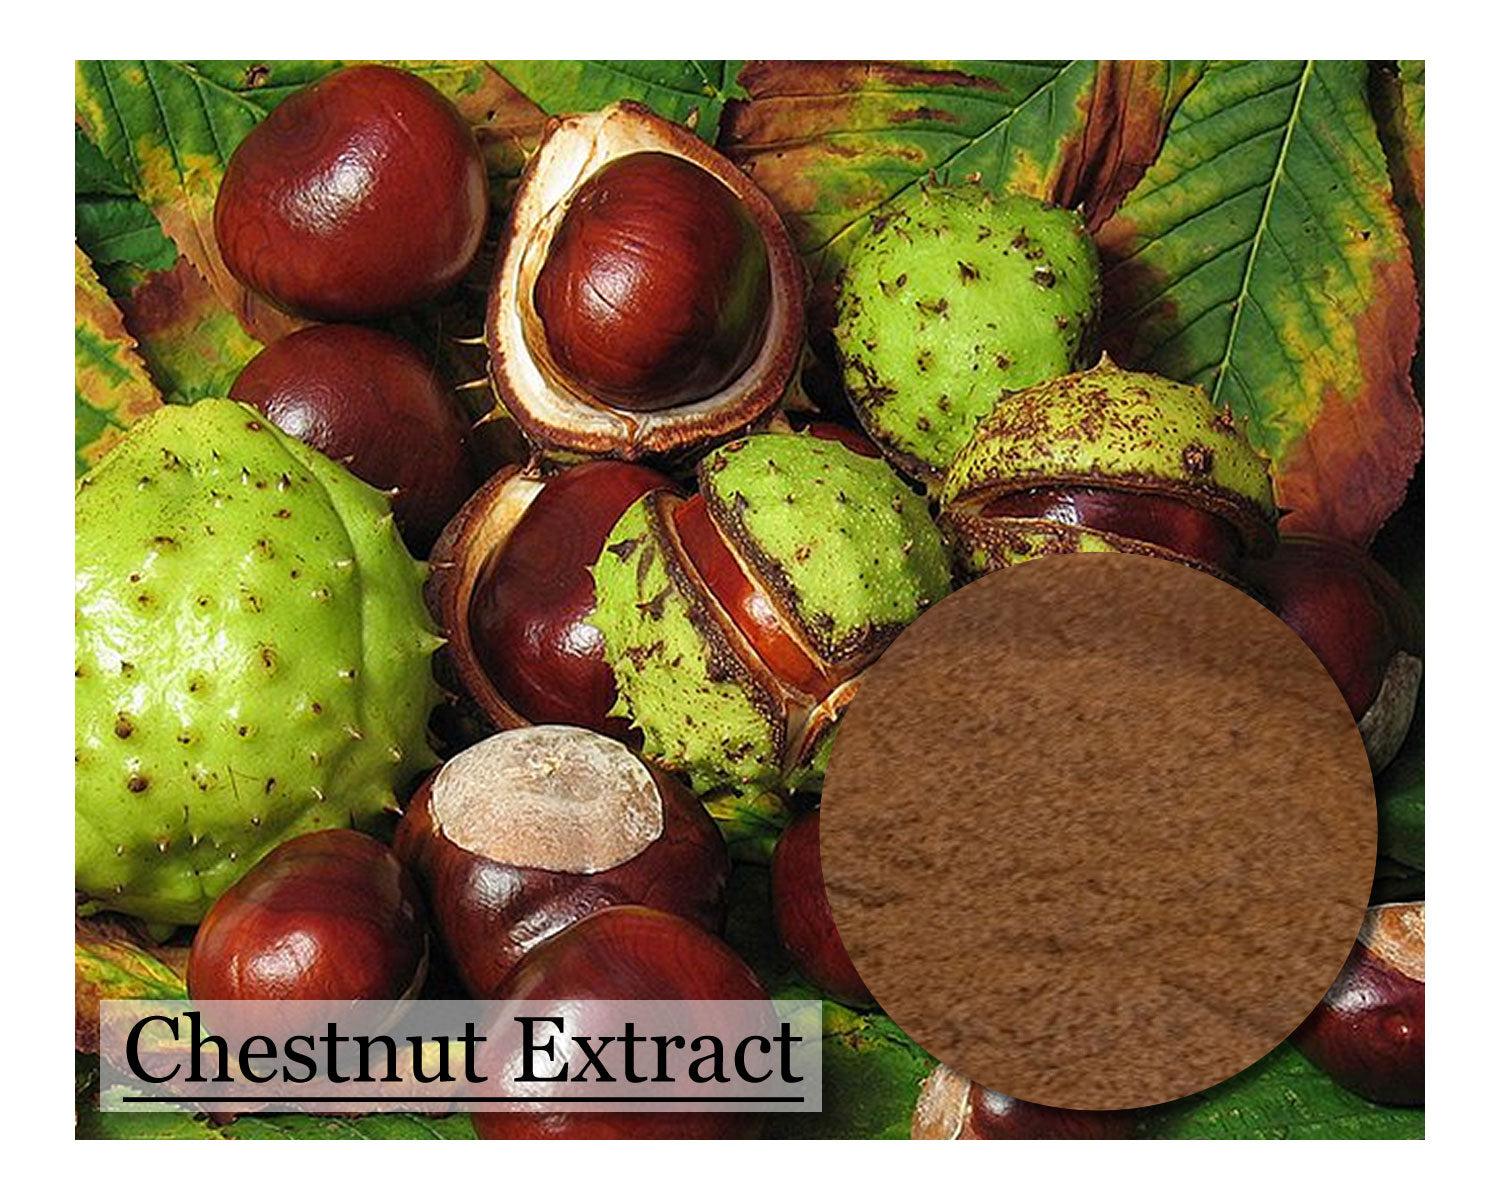 Chestnut Extract 8oz